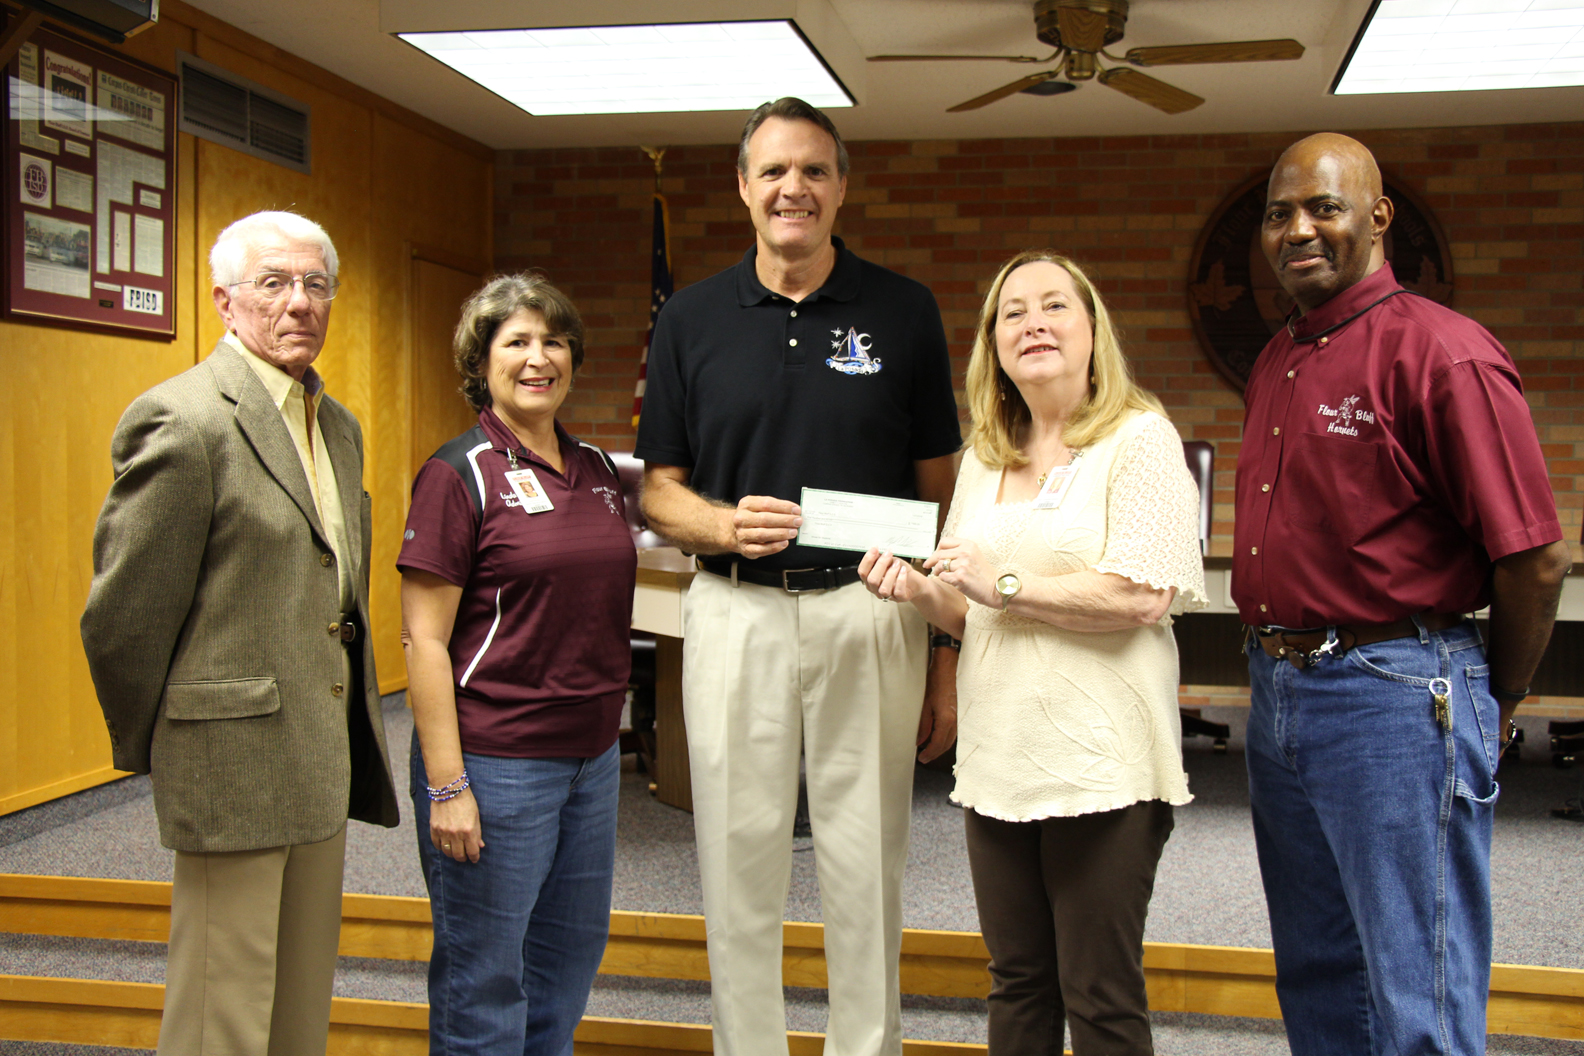 Members of the La Posada Foundation present District Administrators with a $500 check